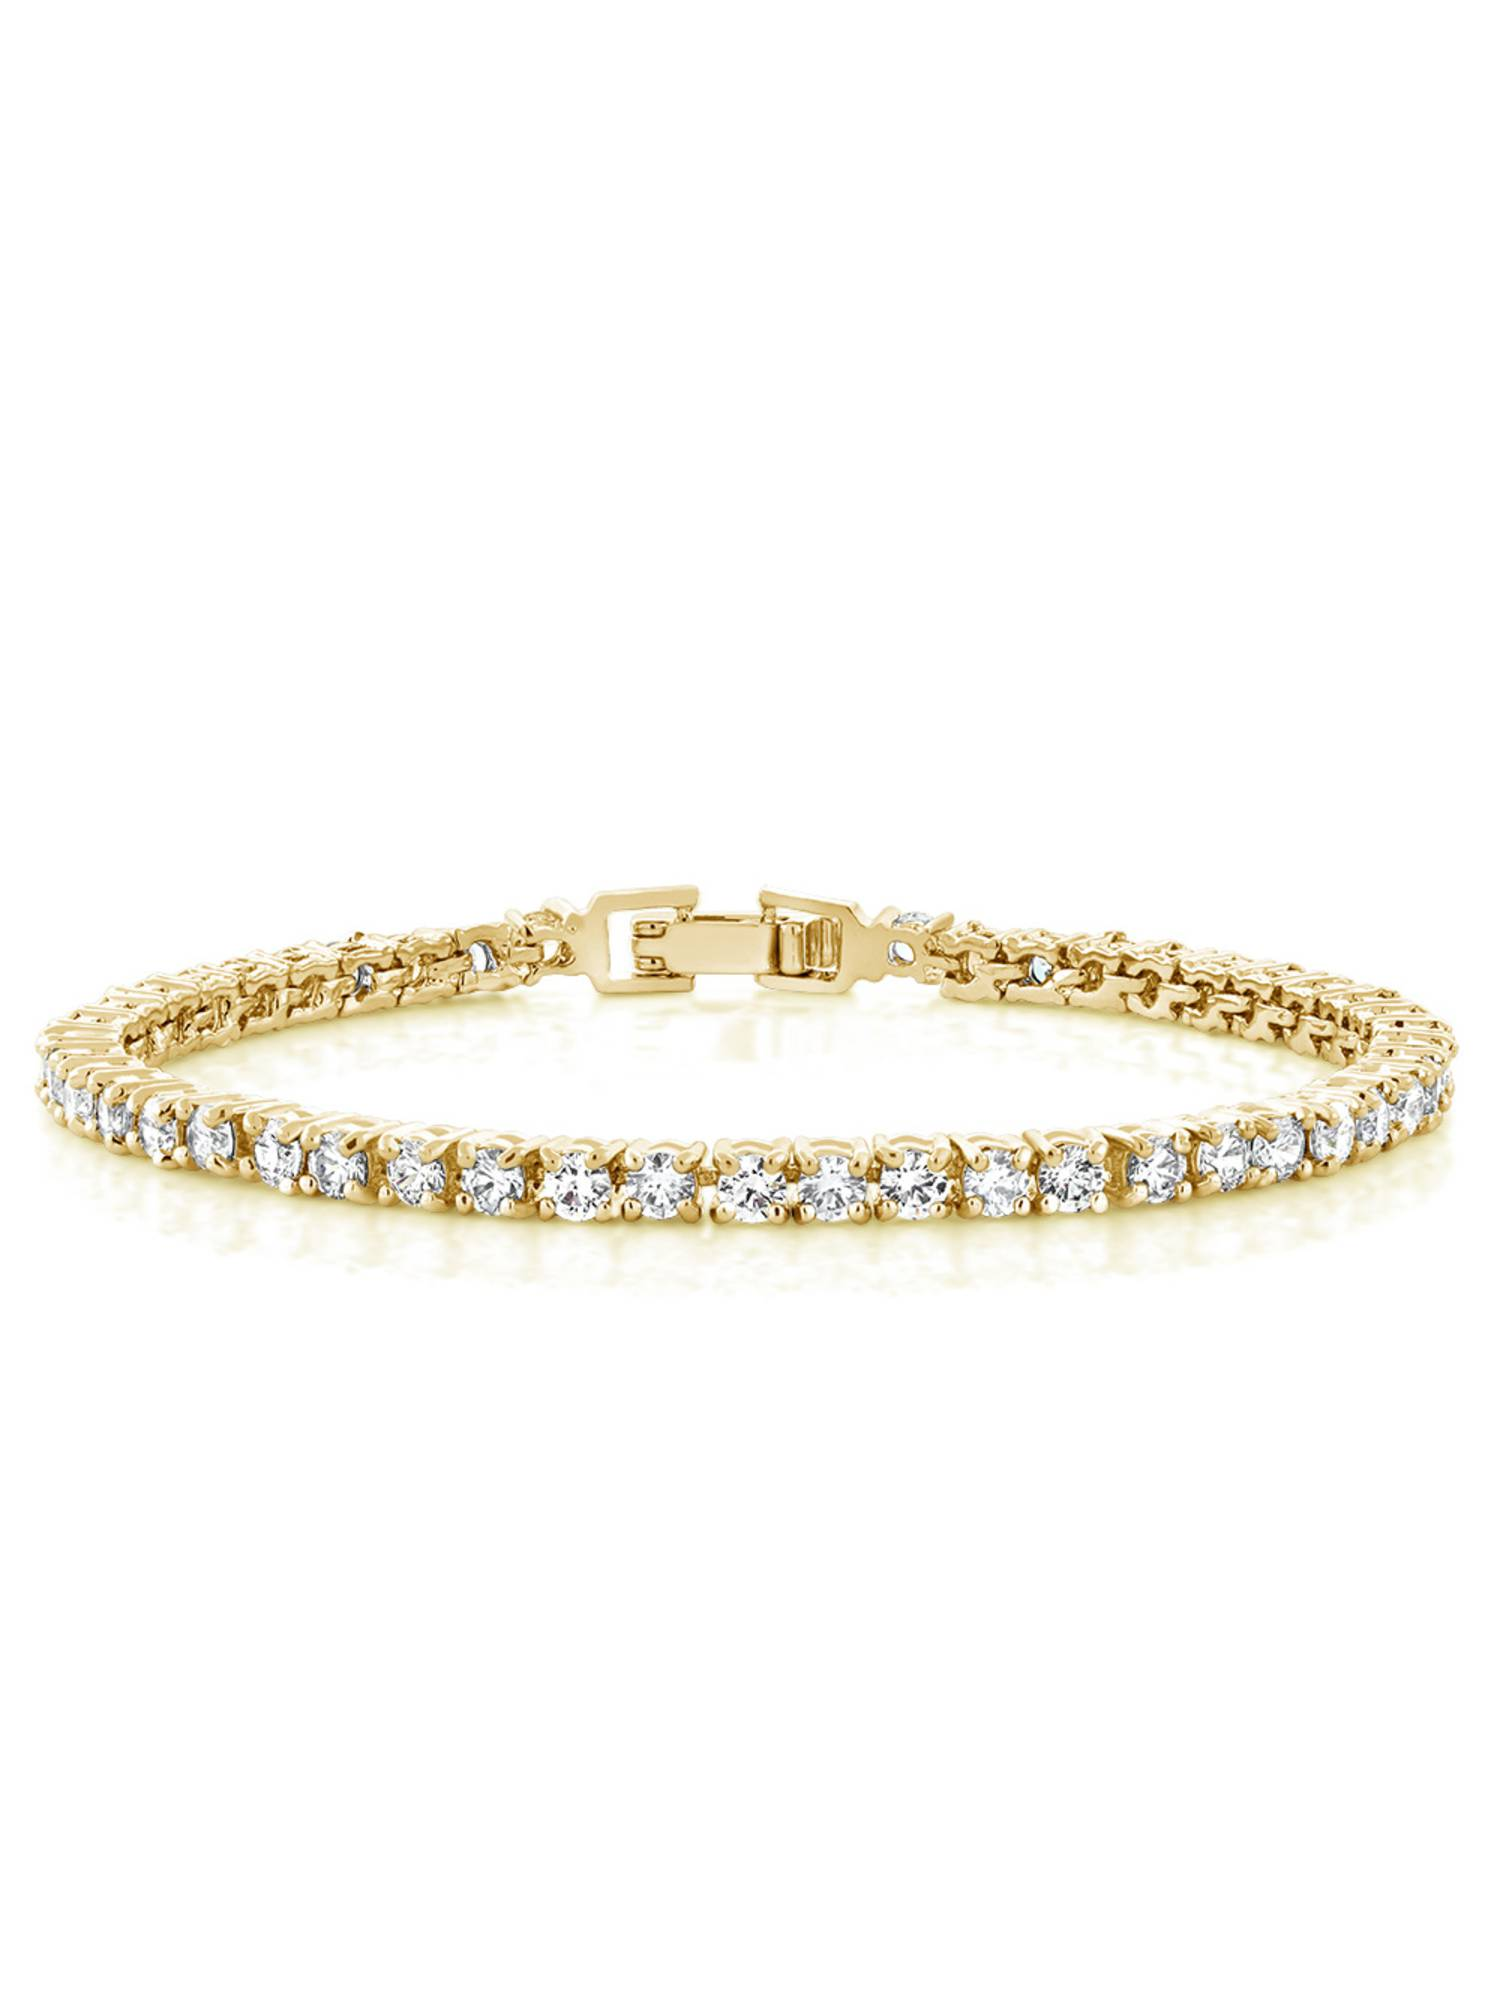 12.00 Ct 7 Inch Round Cubic Zirconias CZ Yellow Gold Plated Tennis Bracelet